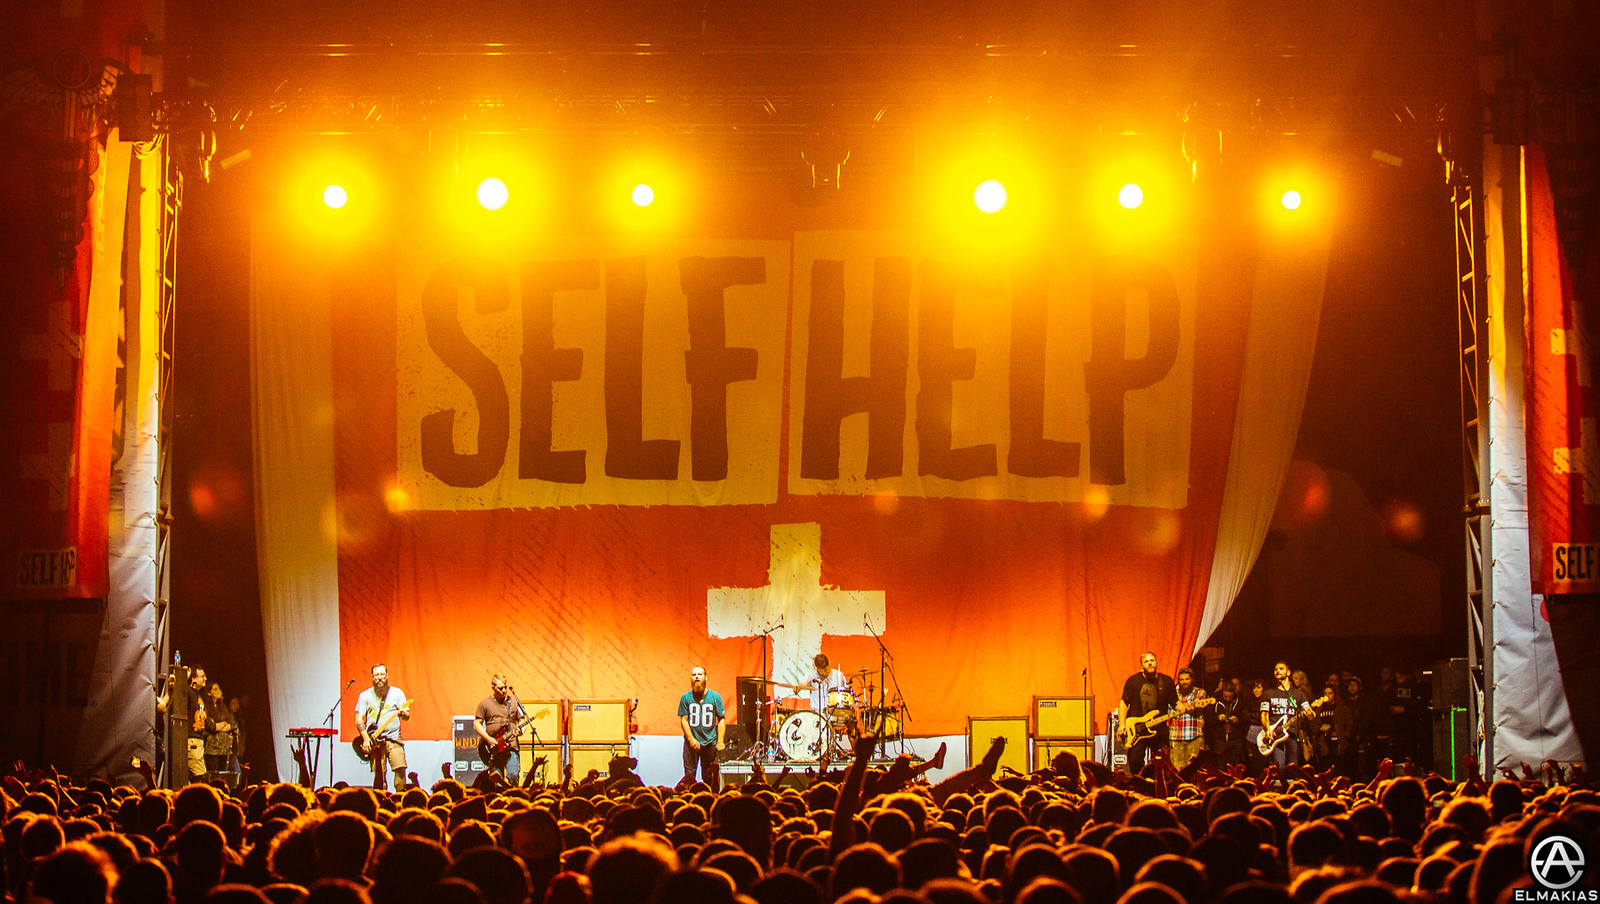 The Wonder Years at Self Help Festival